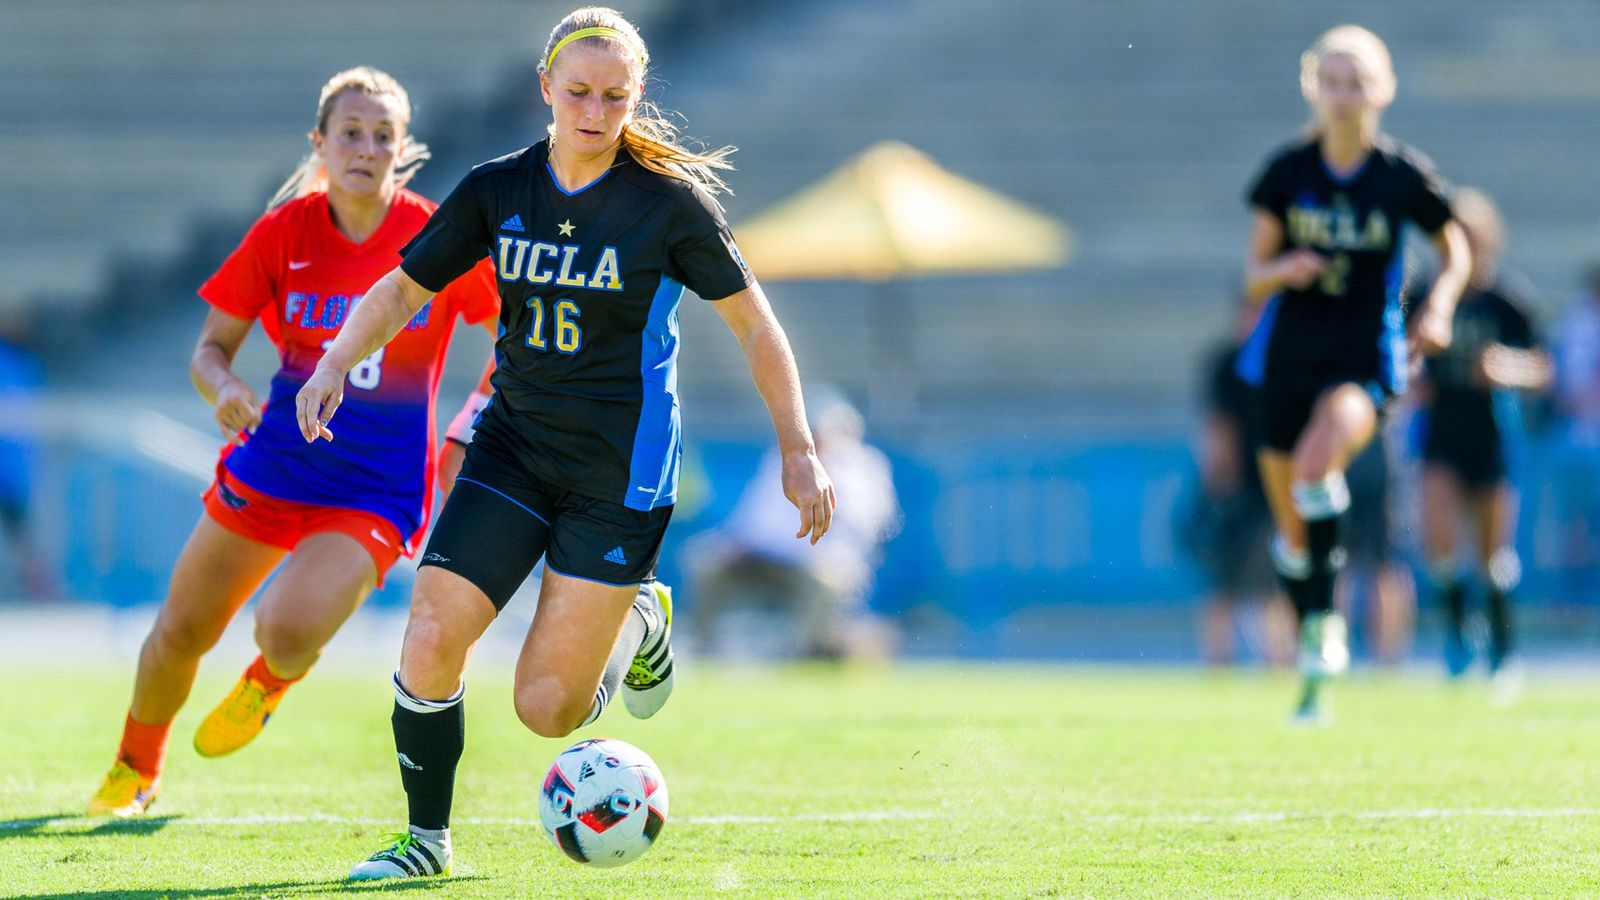 womens non conference soccer action - HD1600×900